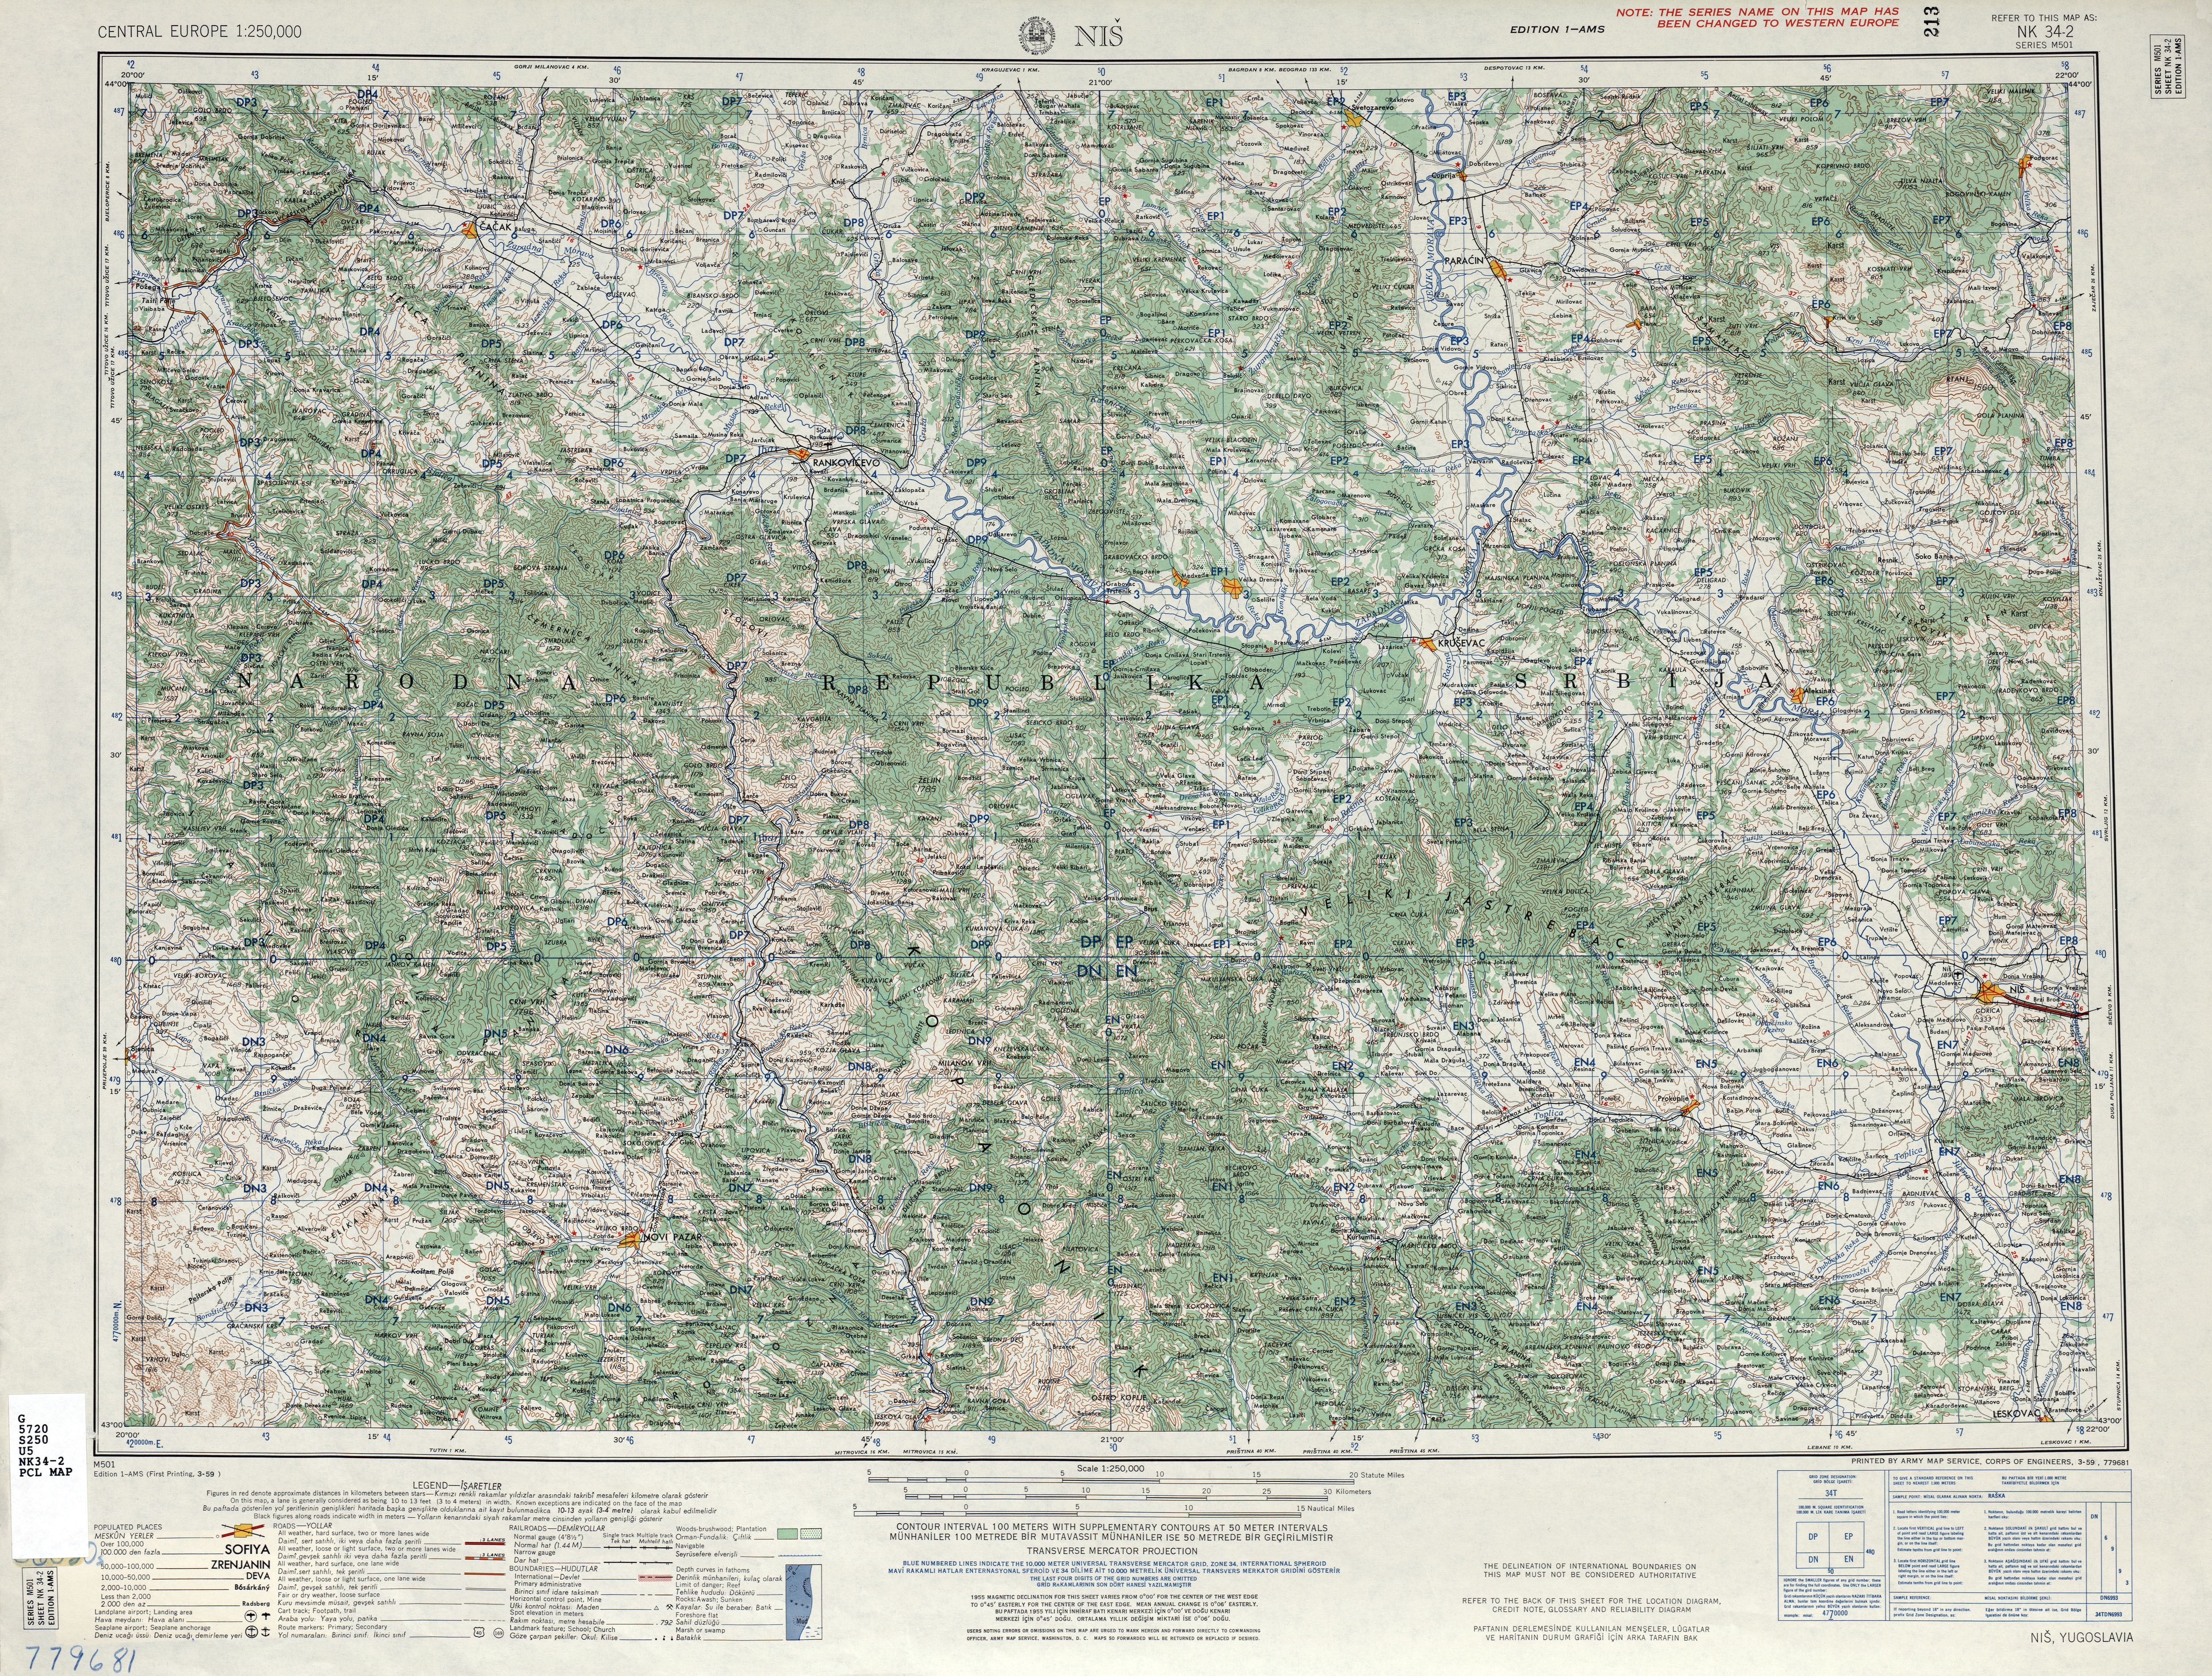 Nis Sheet Nk 34 2 U S Army Map Service Corps Of Engineers